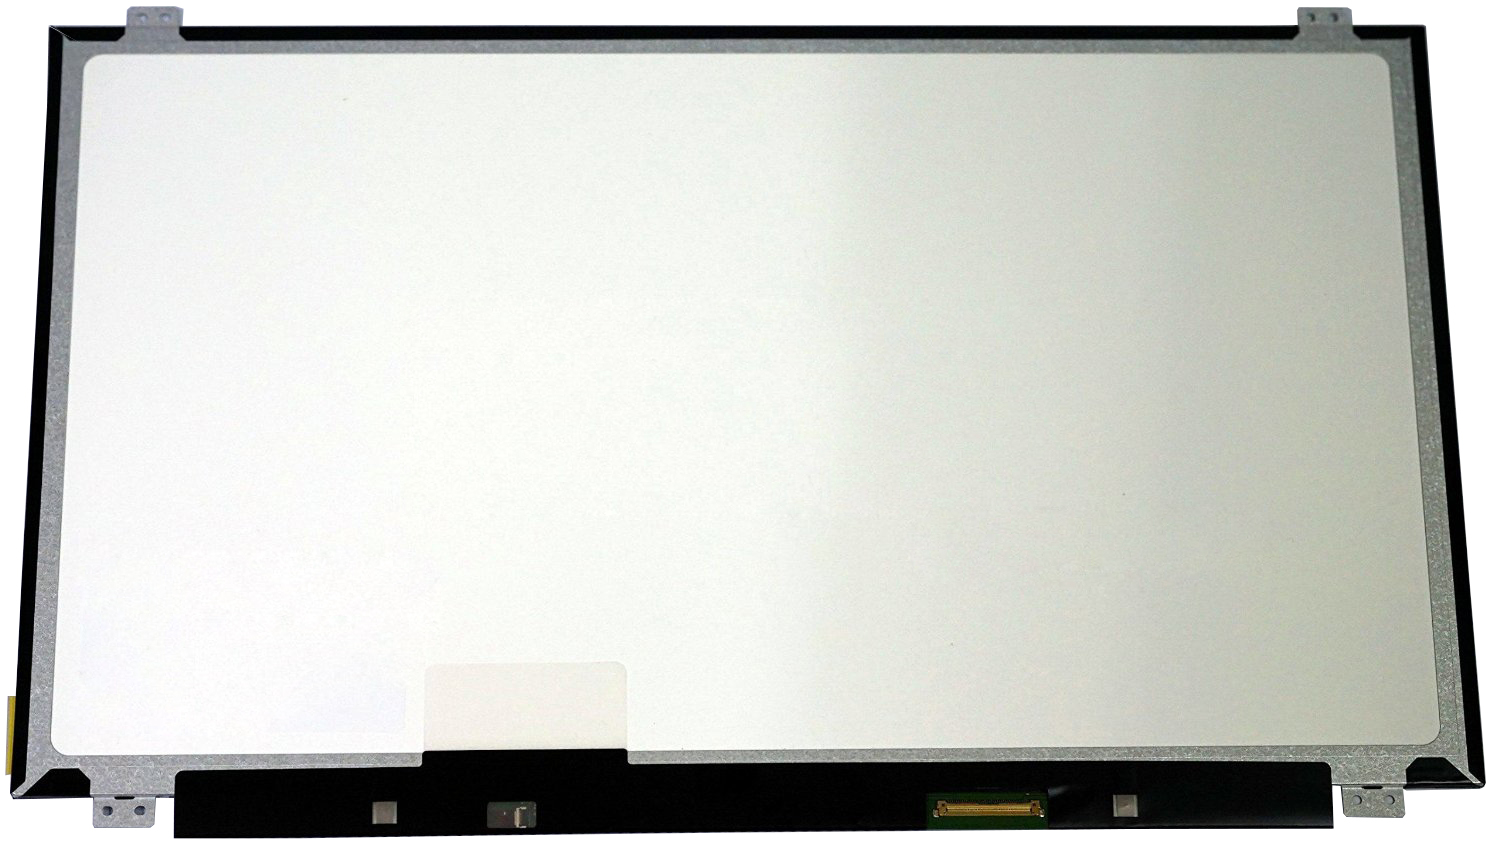 ФОТО QuYing Laptop LCD Screen for Acer ASPIRE VN7-571 VN7-571G V3-575 V3-574TG V3-574T V3-575G E5-552 SERIES(15.6 1366x768 30pin)